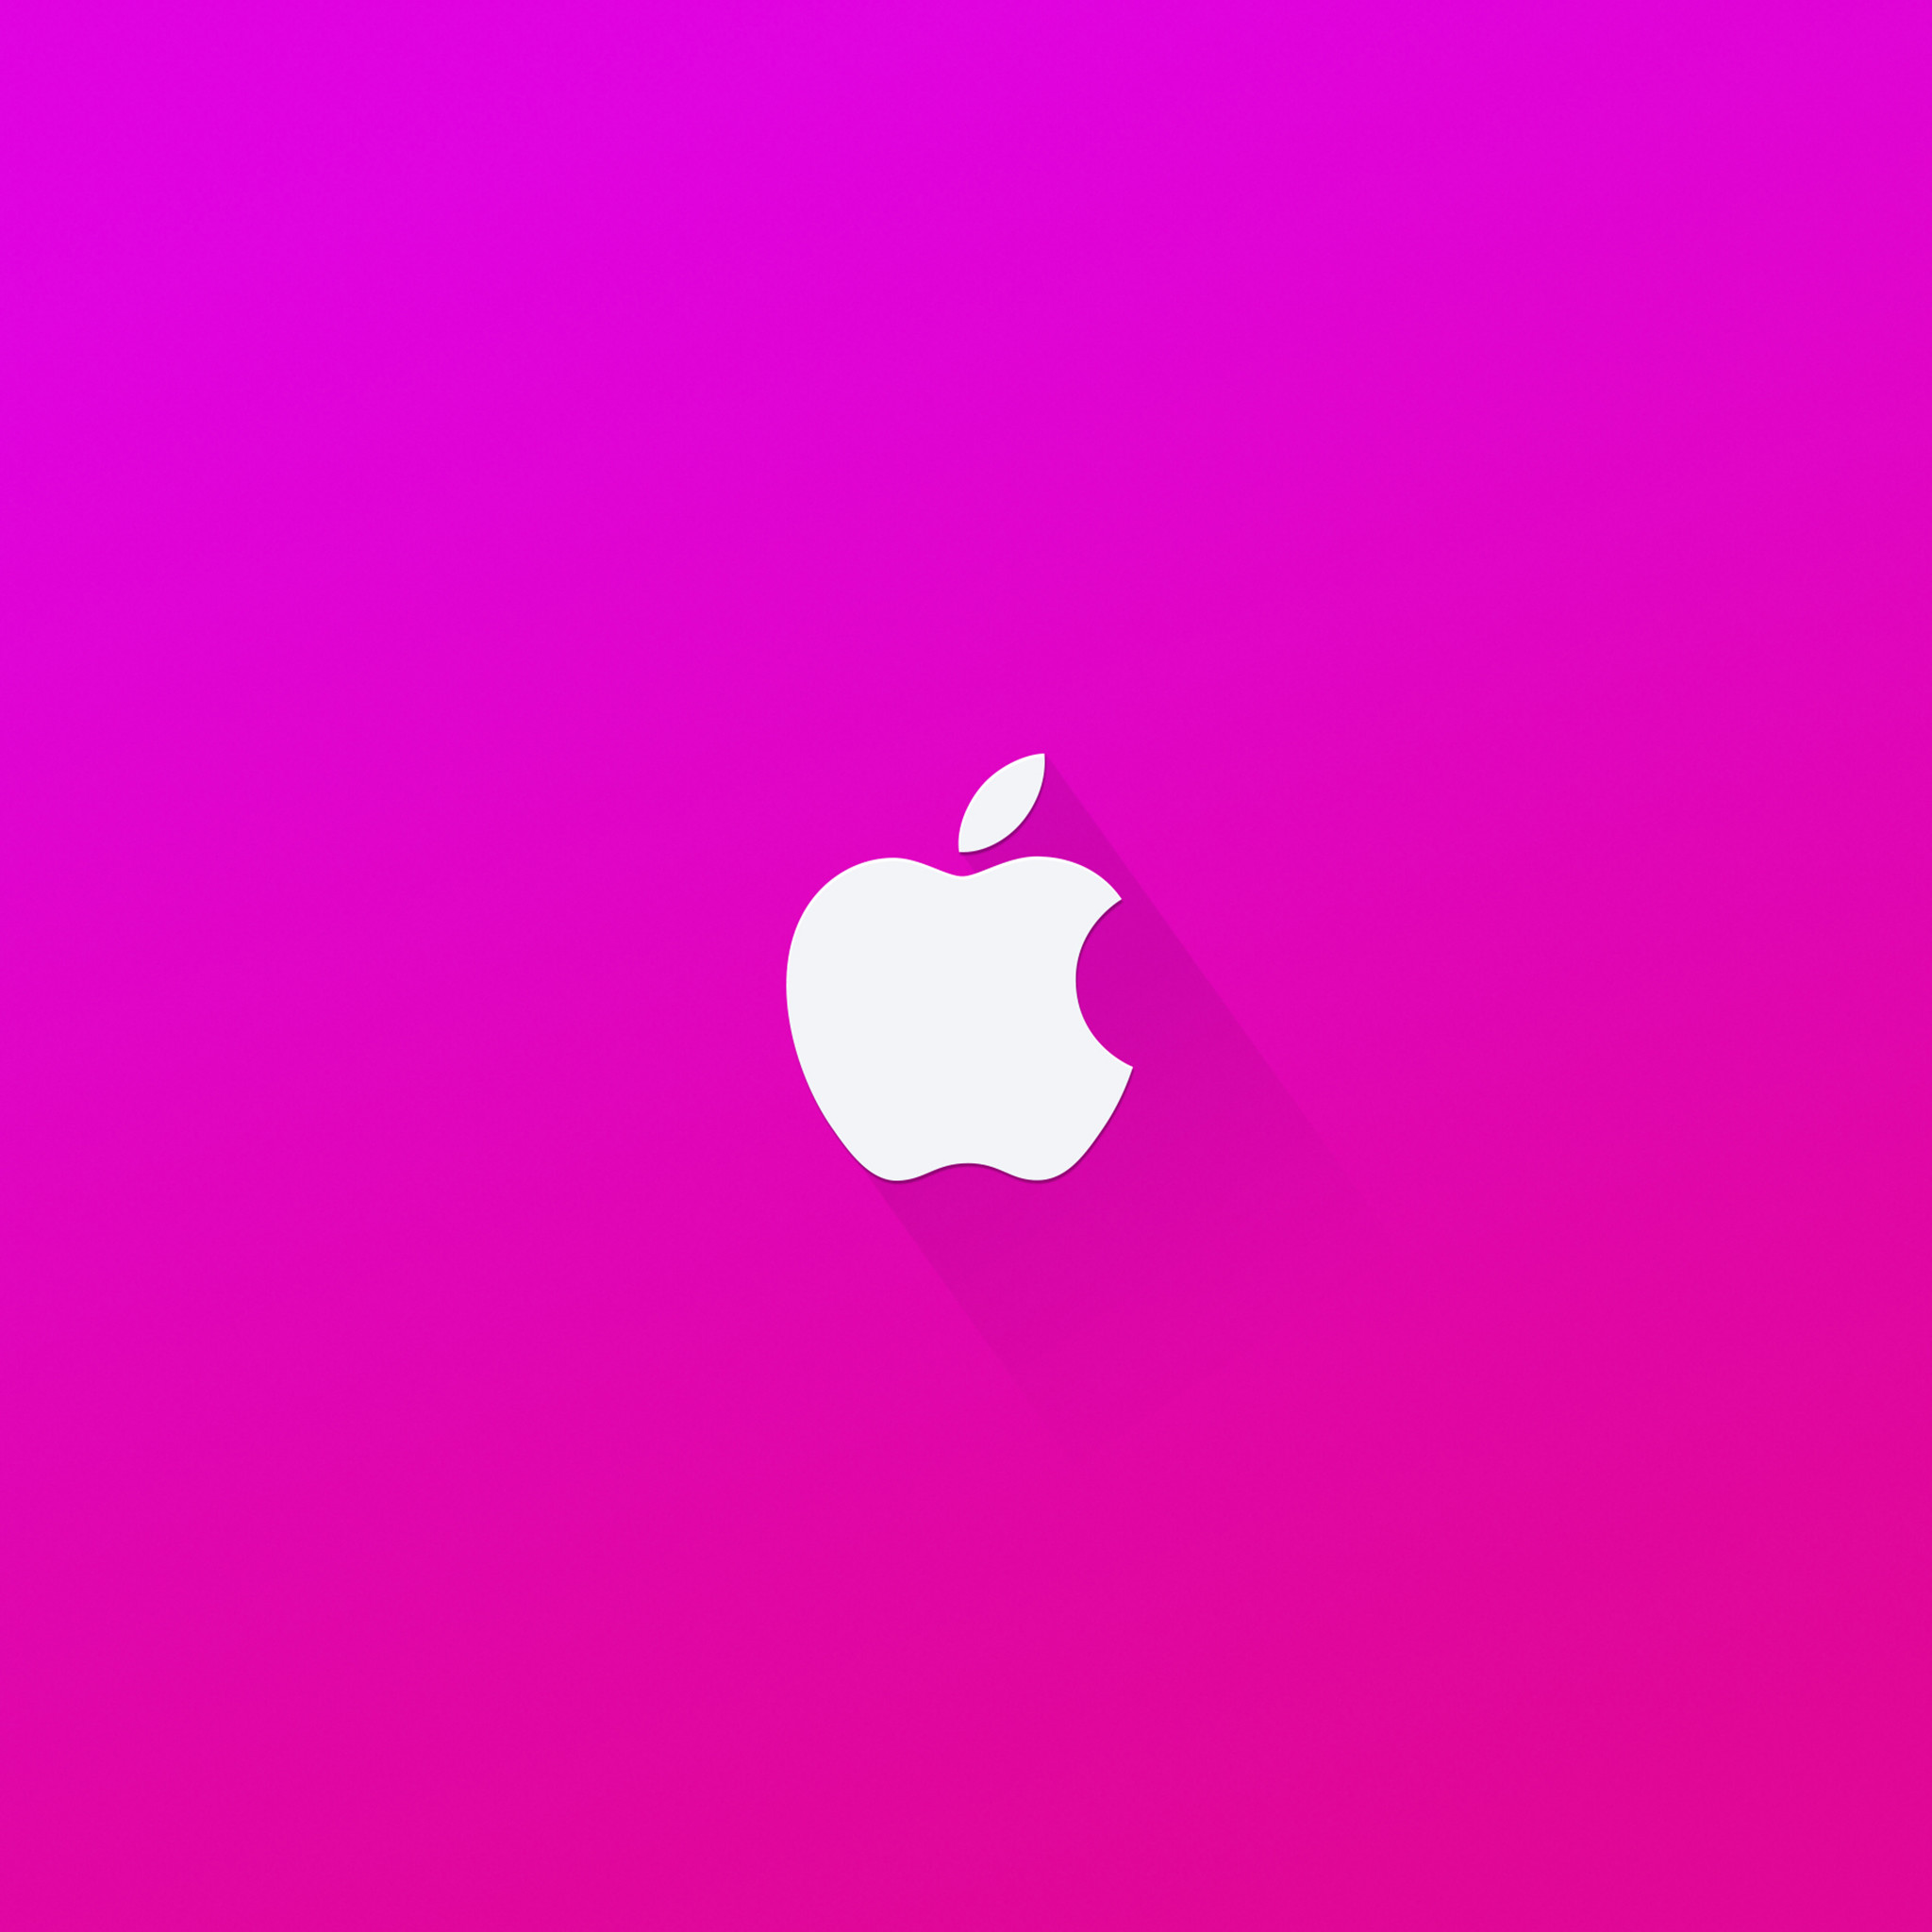 Red Apple Logo Wallpaper 64 Images